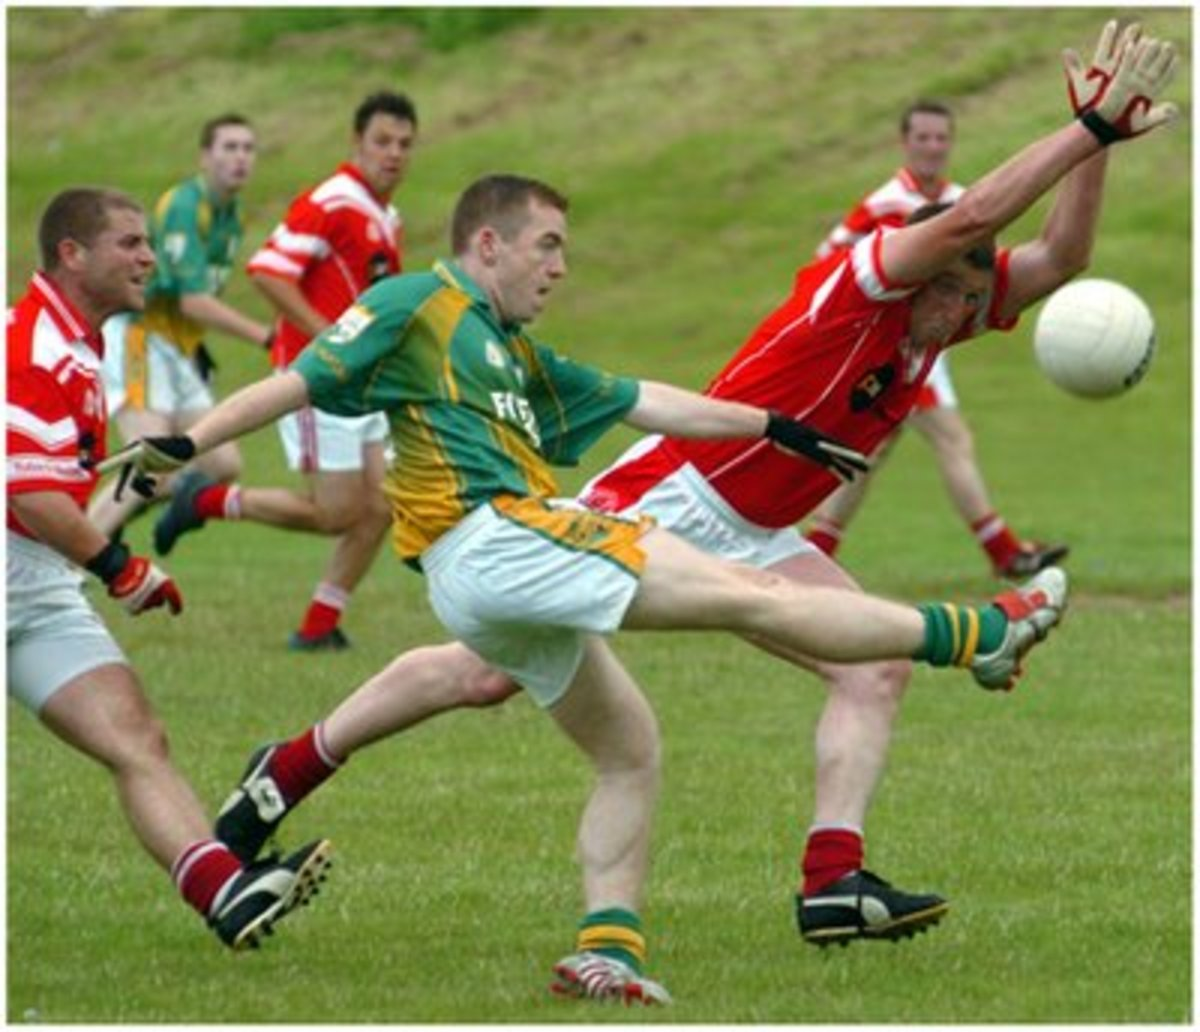 Gaelic Football v Soccer